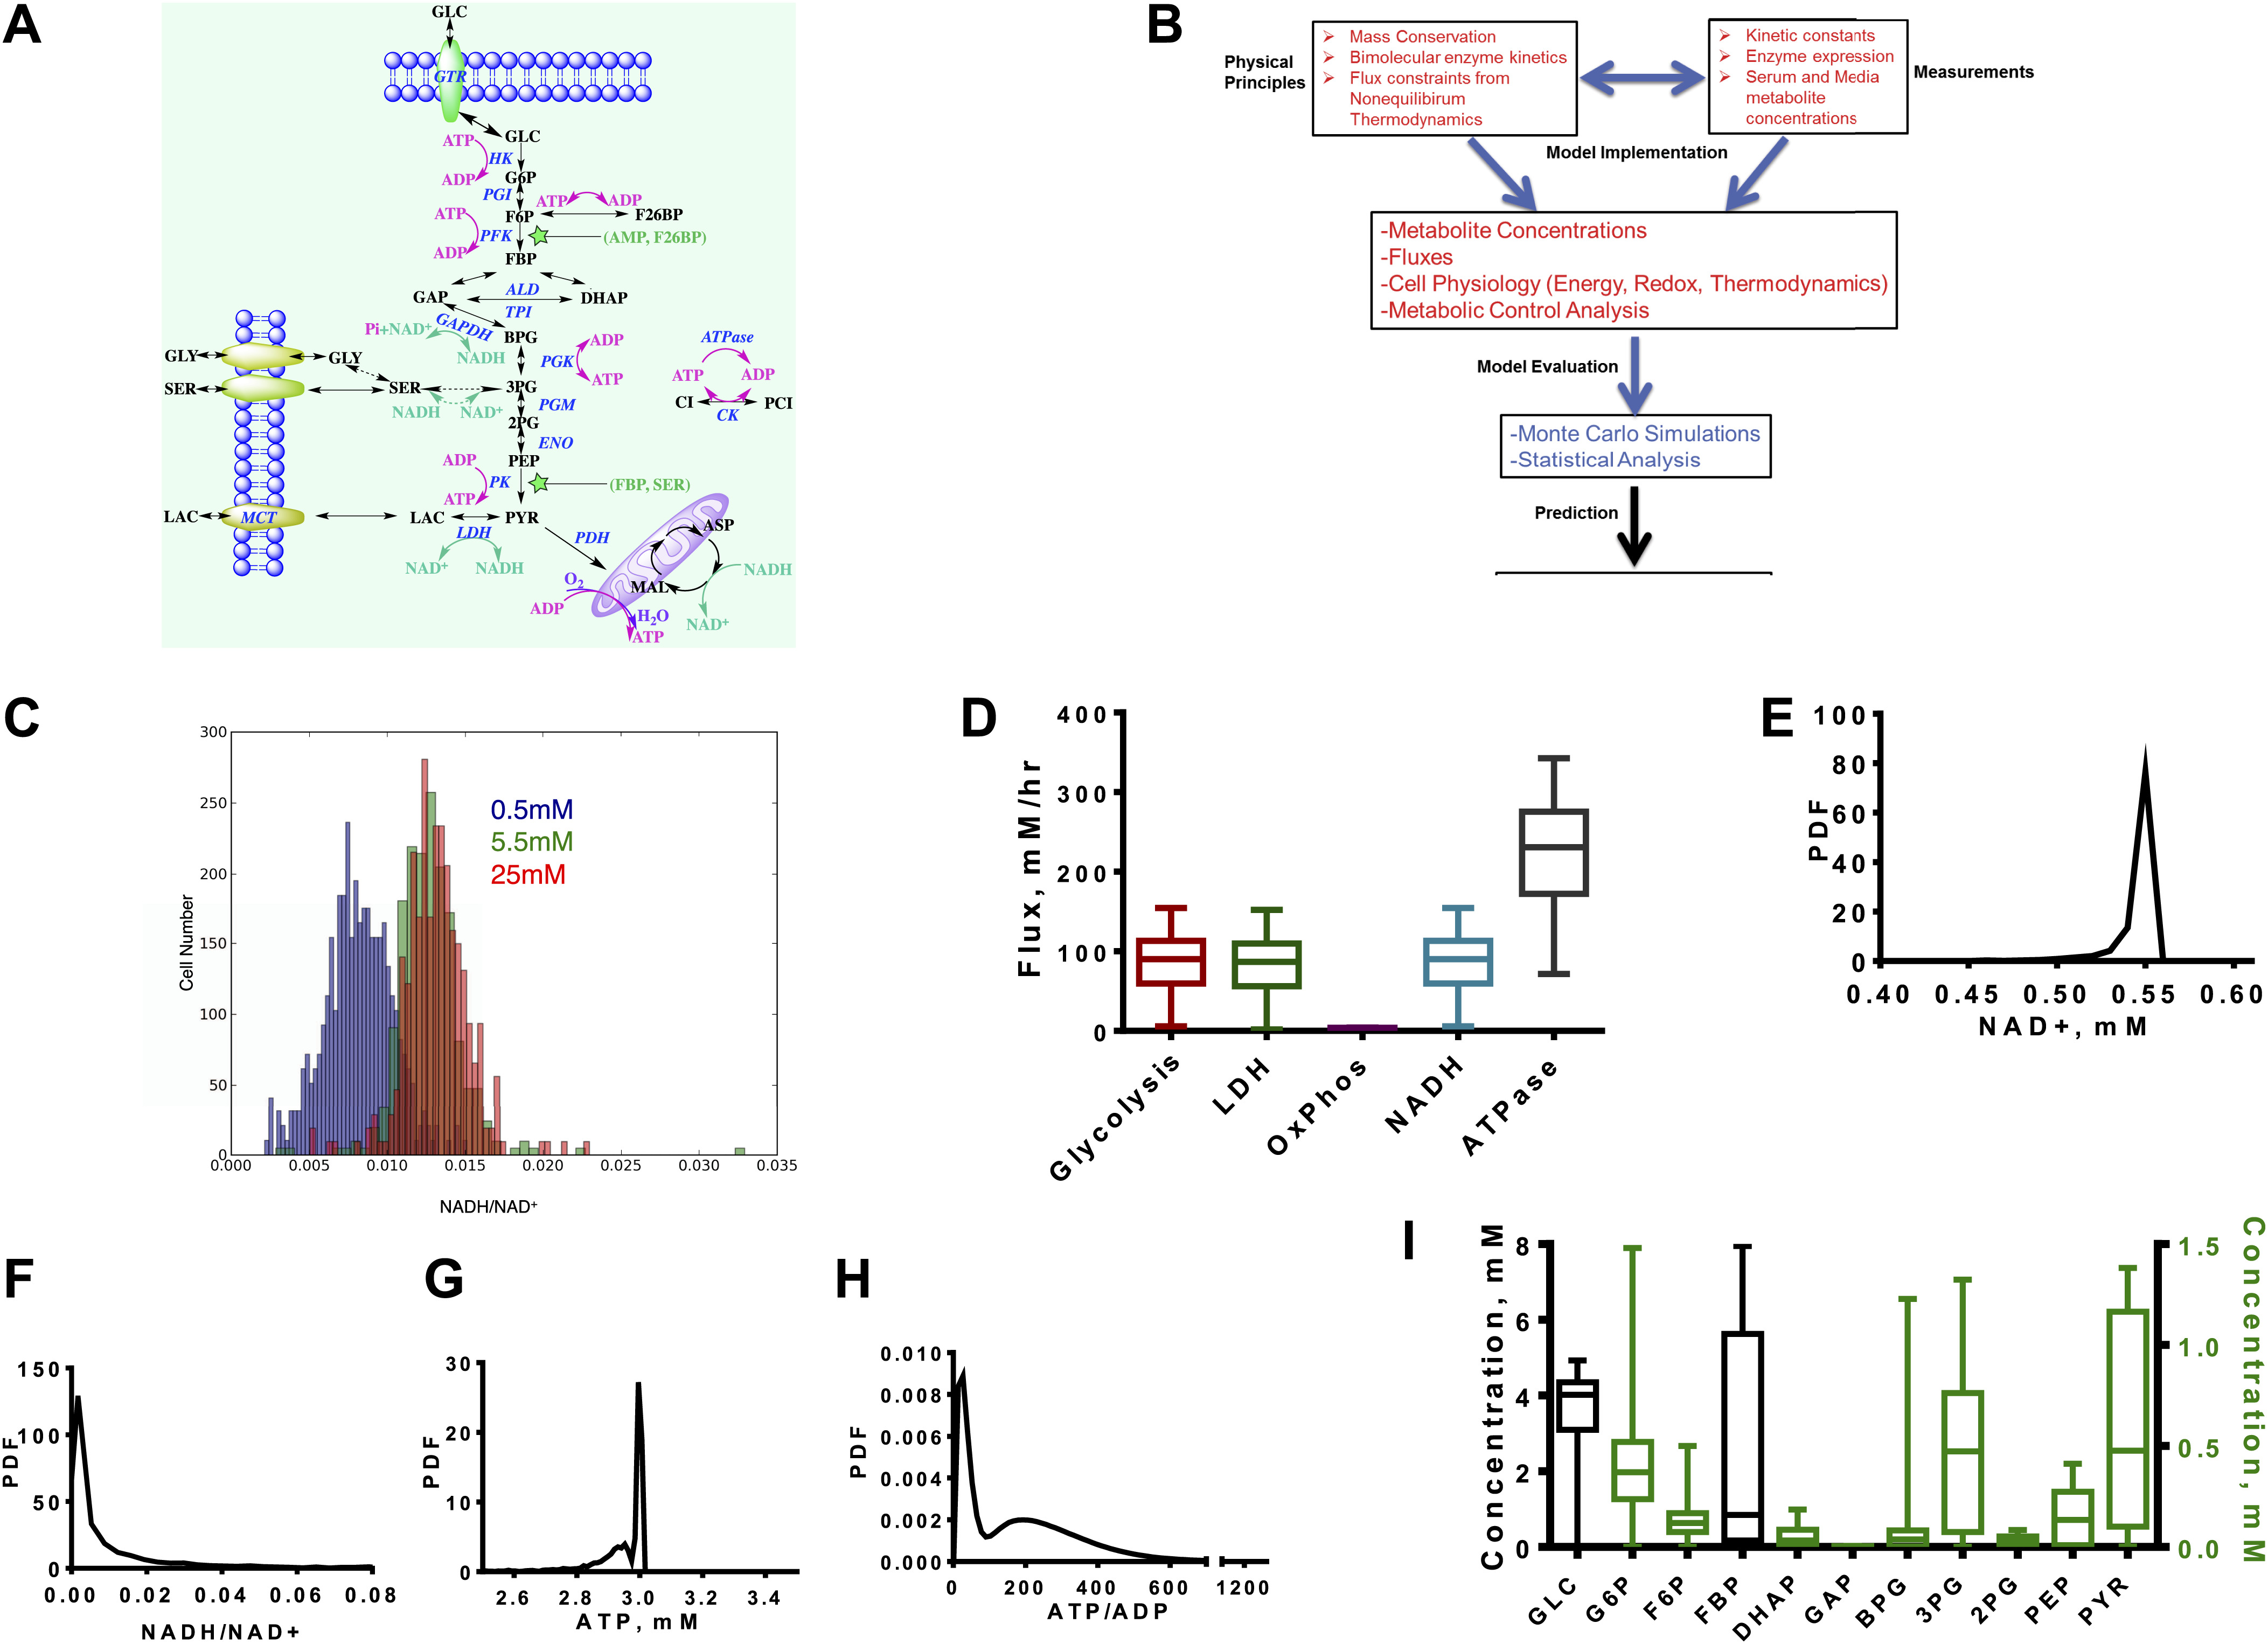 quantitative determinants of aerobic glycolysis identify flux figure 1